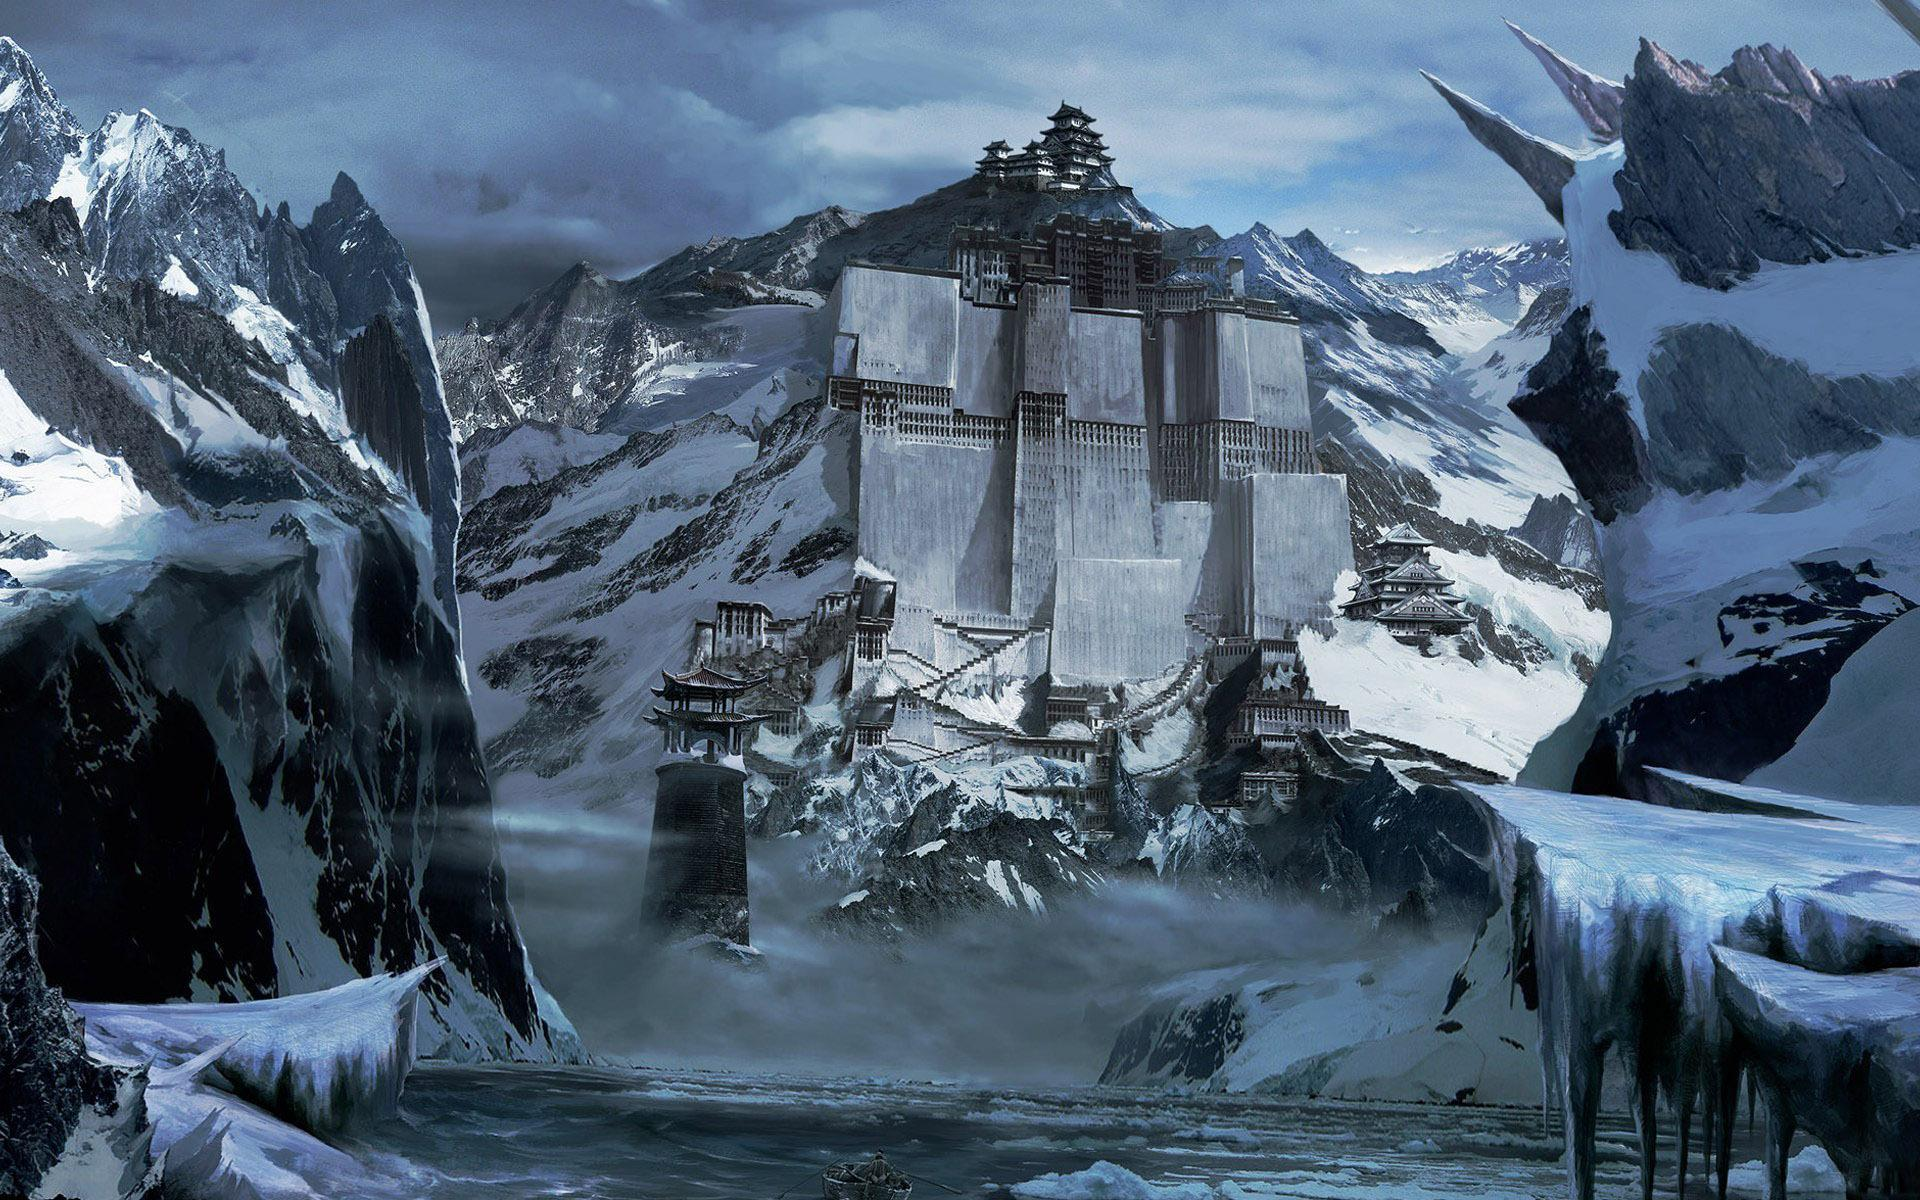 fortress-in-the-snowy-mountains.jpg